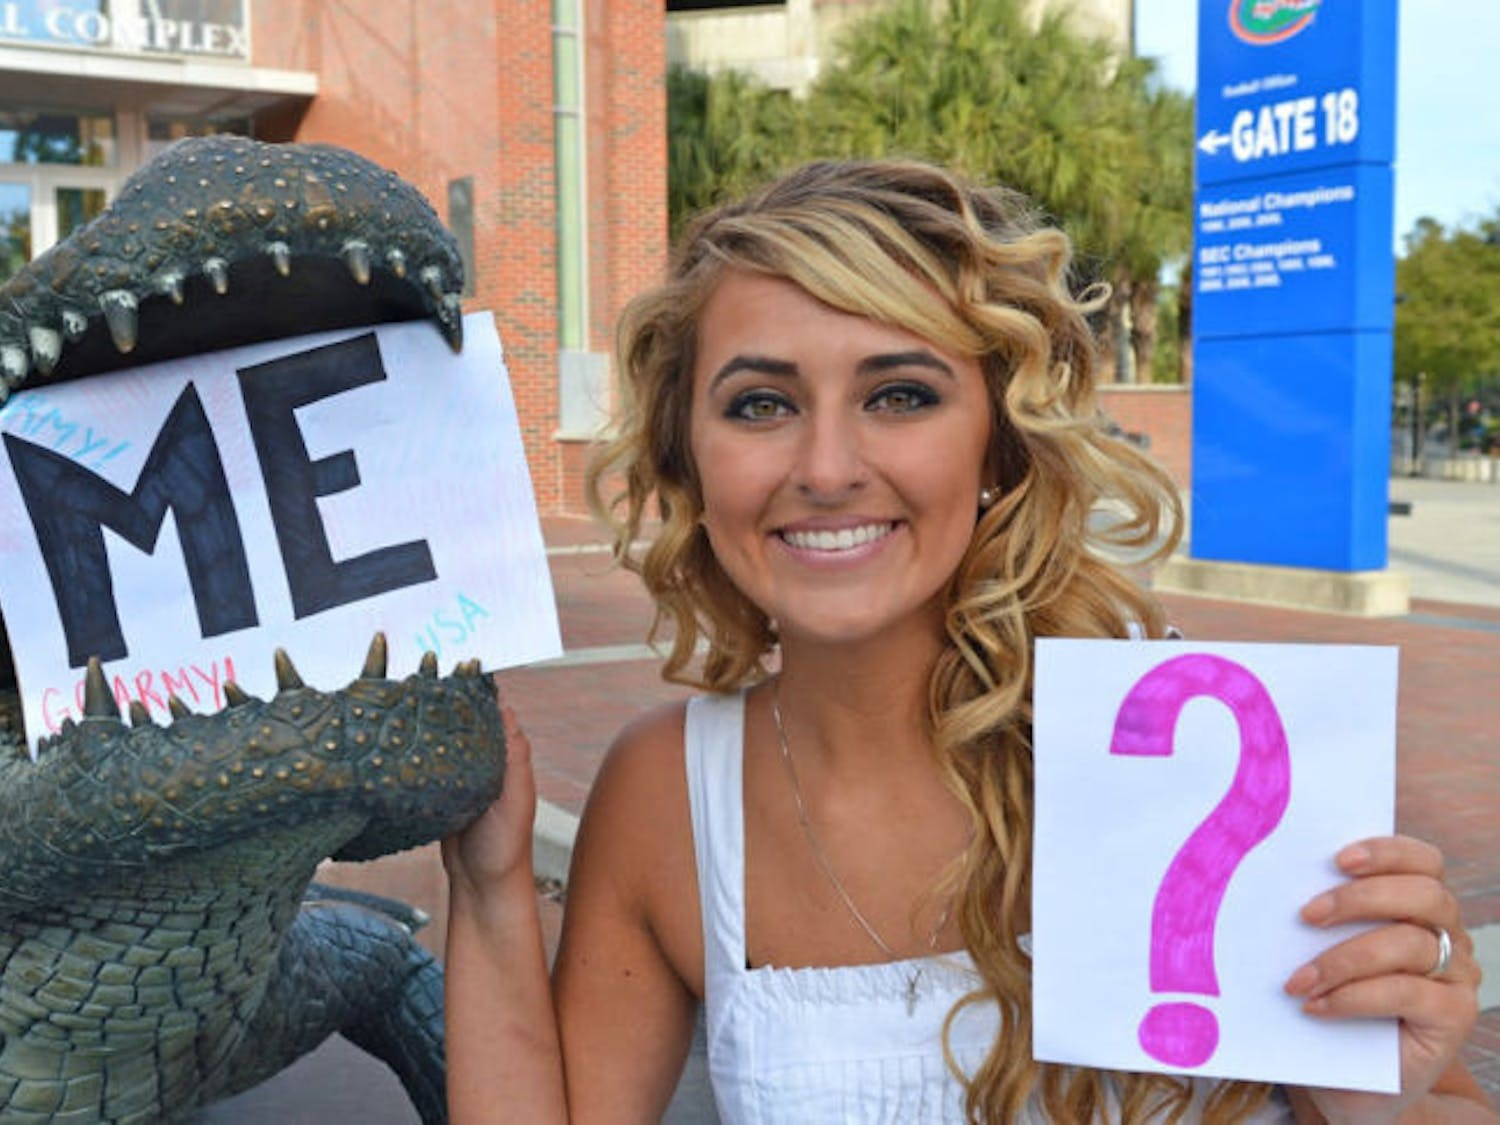 Keira Hornyak poses with some of the signs she used to ask Tim Tebow to the UF Military Ball. Hornyak wants Tebow to help endorse a cystic fibrosis fundraiser.